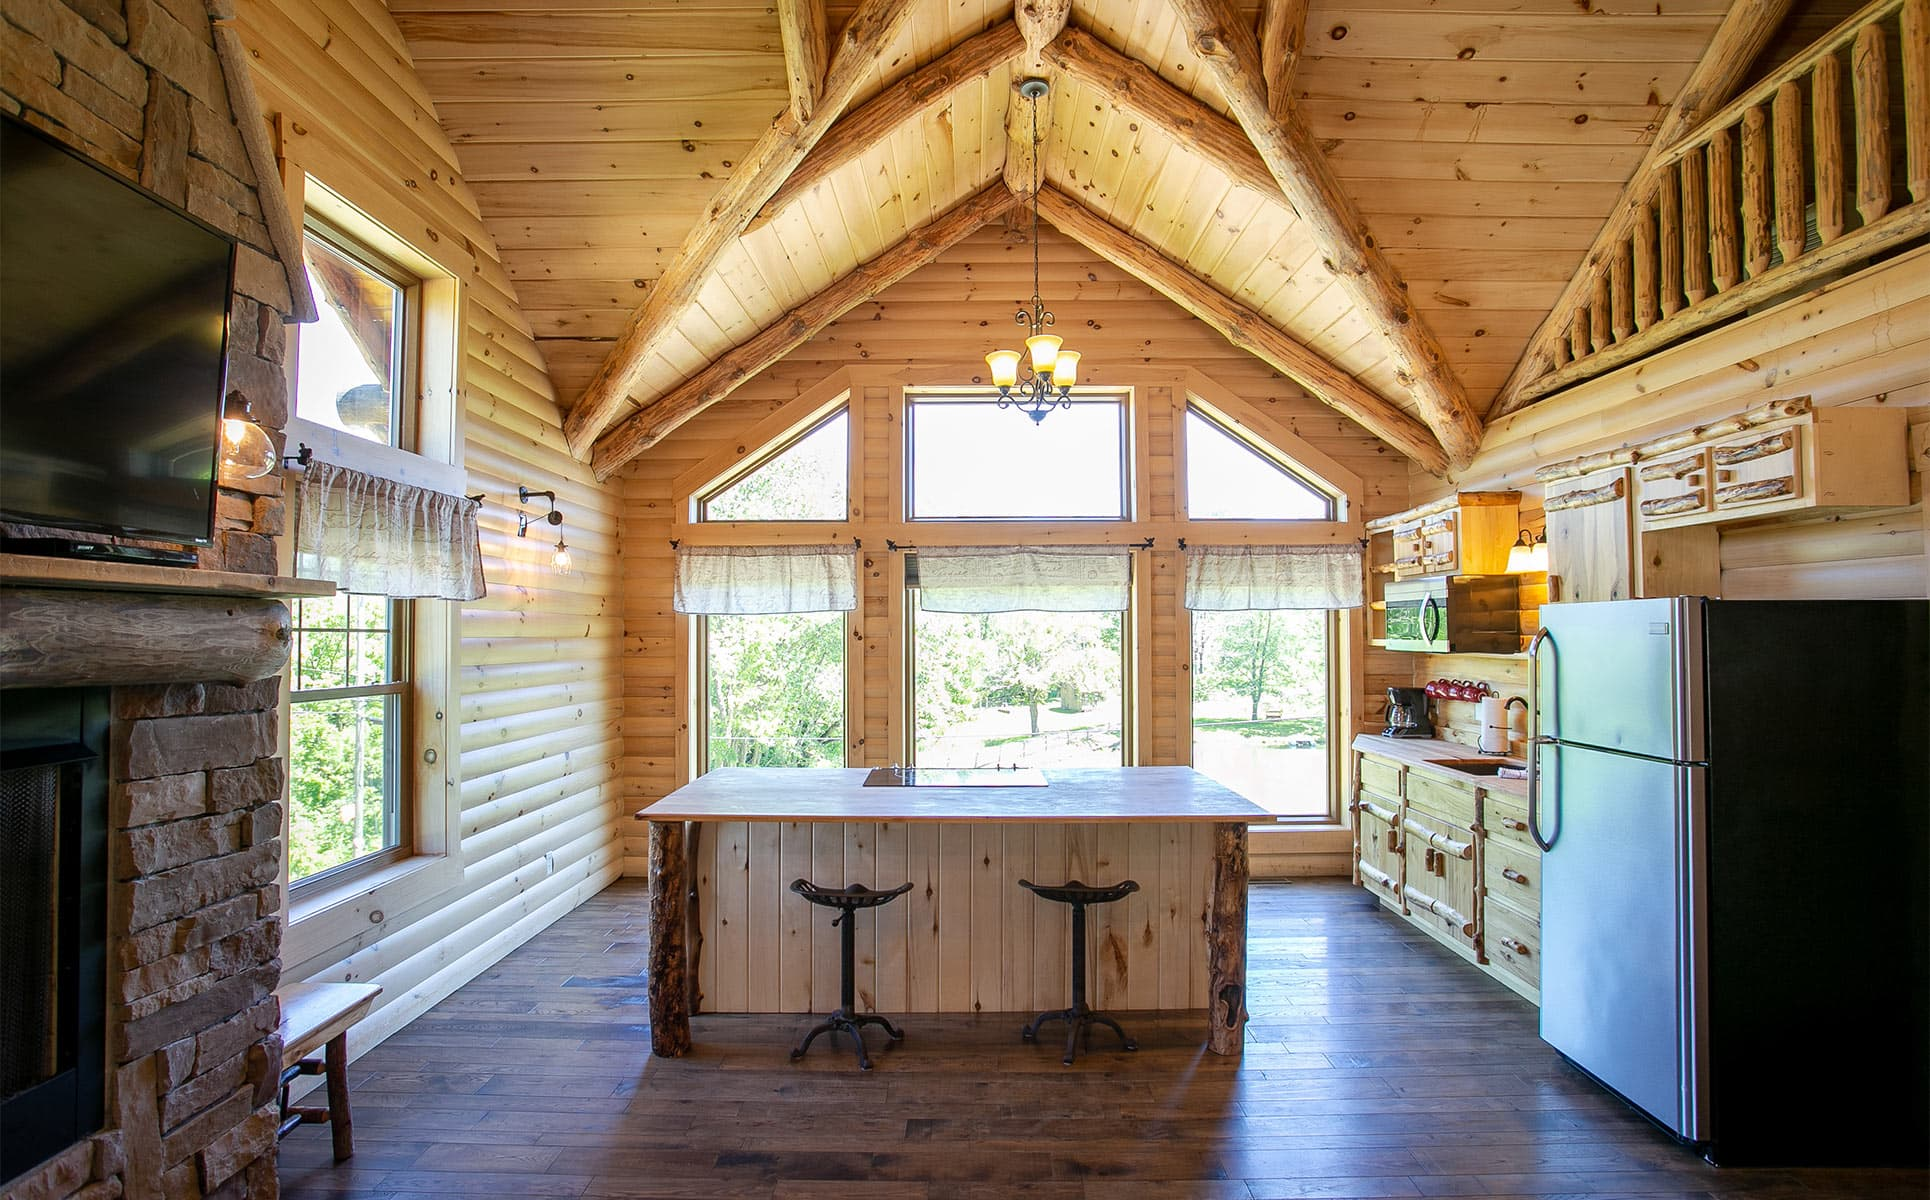 Kitchen area with vaulted ceiling